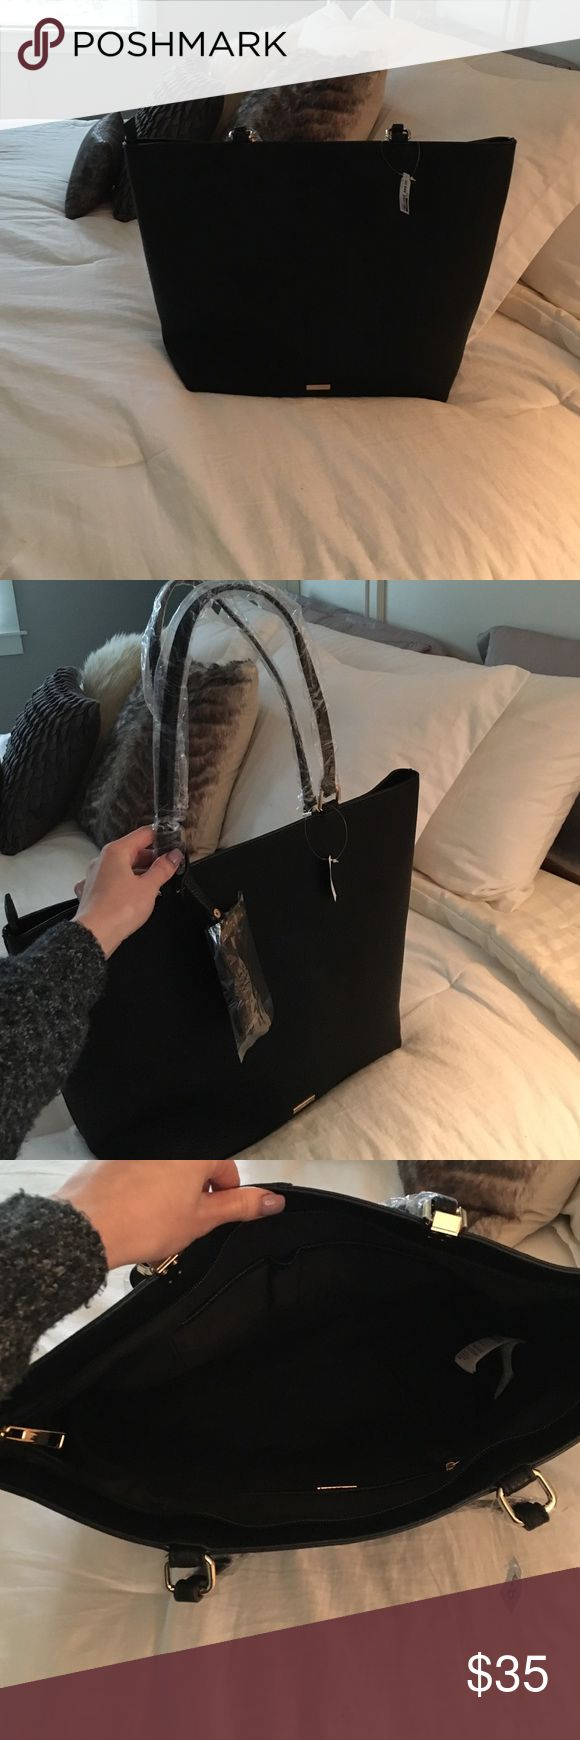 Black Aldo handbag 💕 All black handbag with gold detail ❤ love this but I got 2 of the same for christmas😂 you can use it as a handbag or tote !!! brand new with tags 🙋 Aldo Bags Shoulder Bags